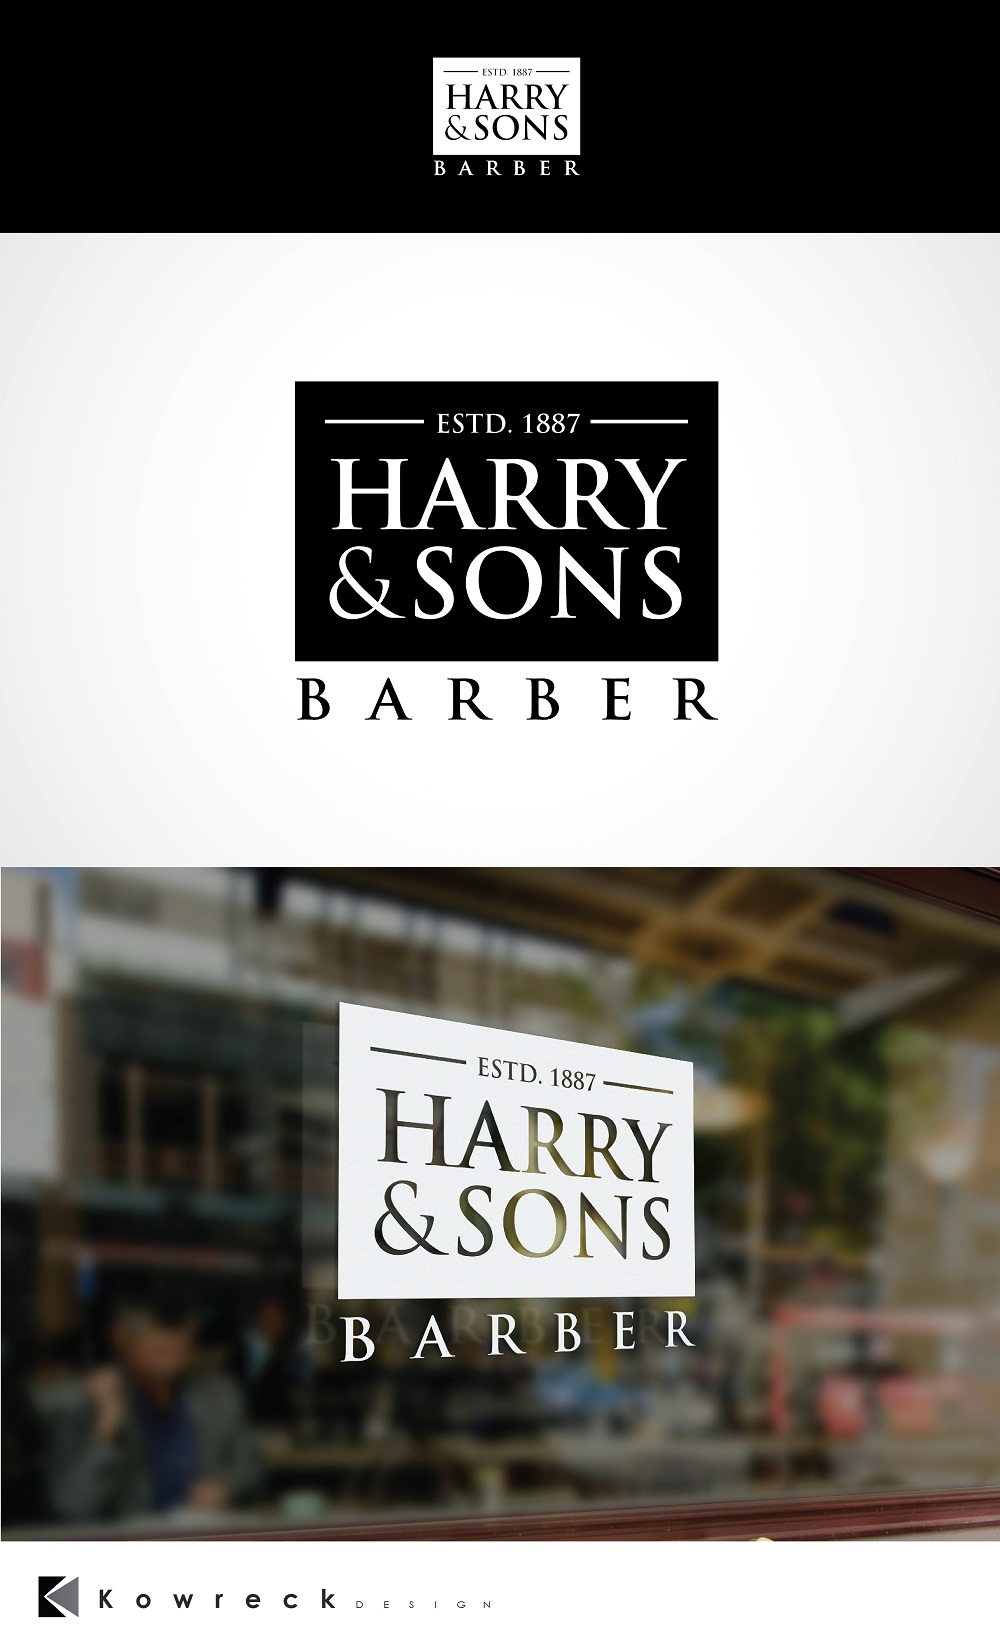 Logo Design by kowreck - Entry No. 247 in the Logo Design Contest Captivating Logo Design for Harry and Sons Barber.